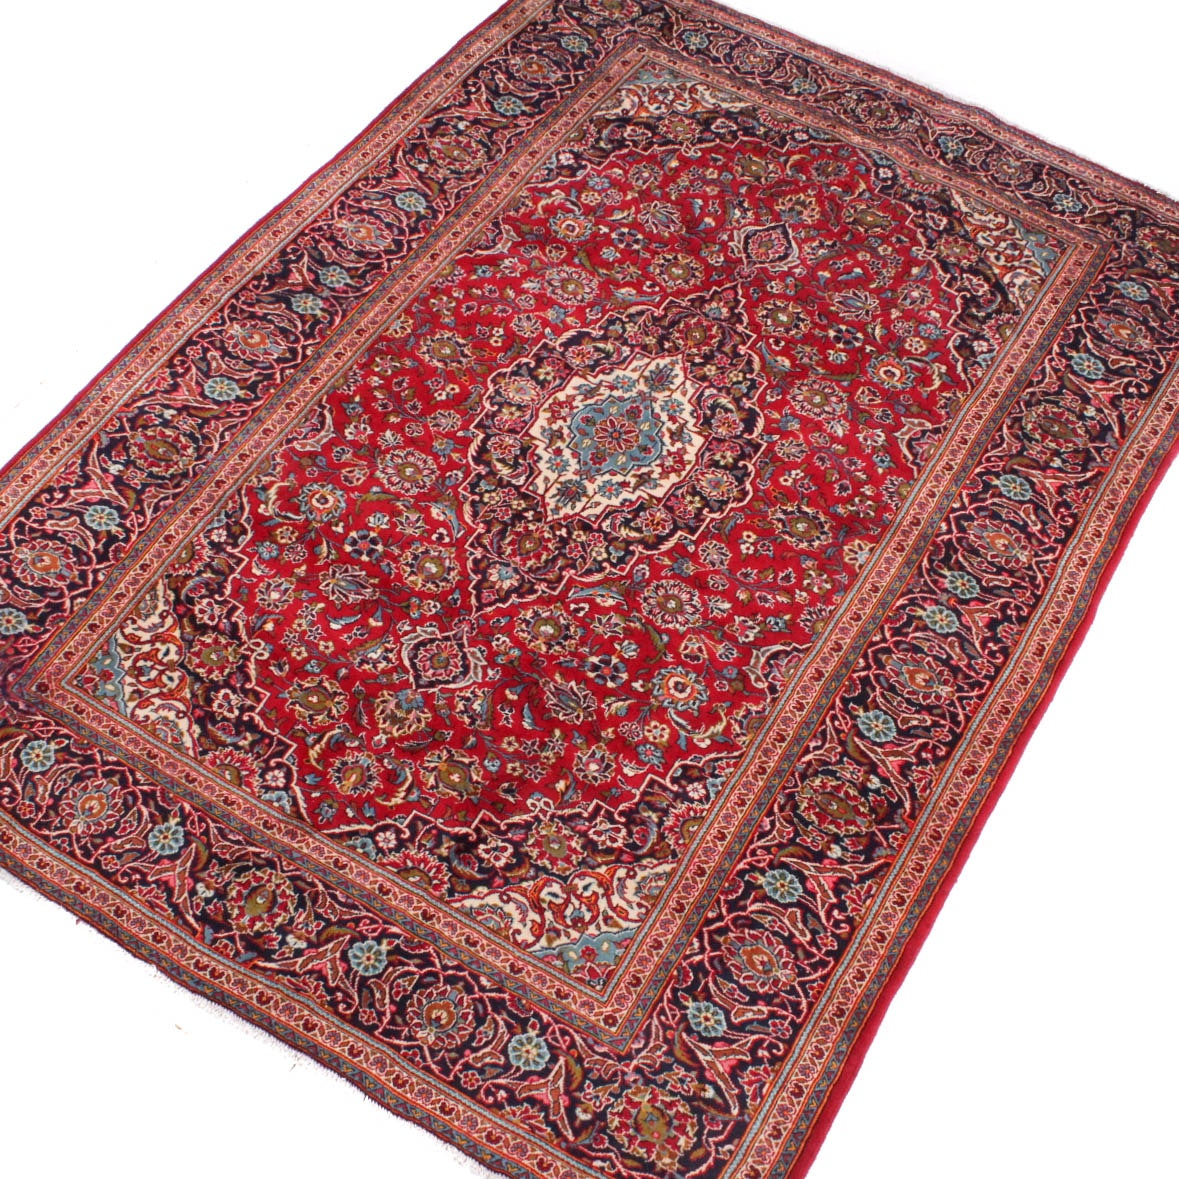 8' x 11' Hand-Knotted Persian Kashan Room Size Rug